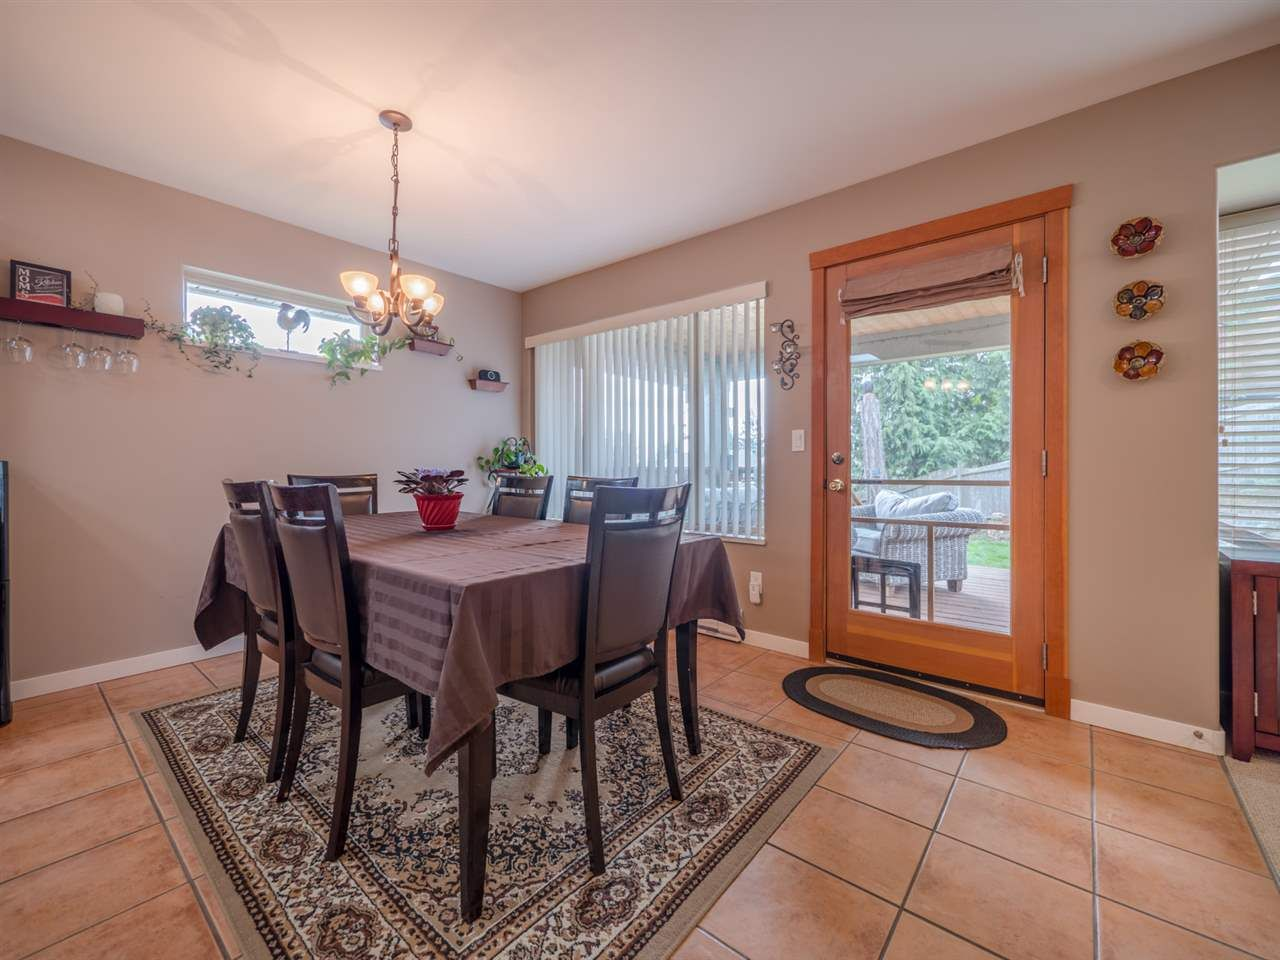 Photo 8: Photos: 6335 PICADILLY Place in Sechelt: Sechelt District House for sale (Sunshine Coast)  : MLS®# R2248834